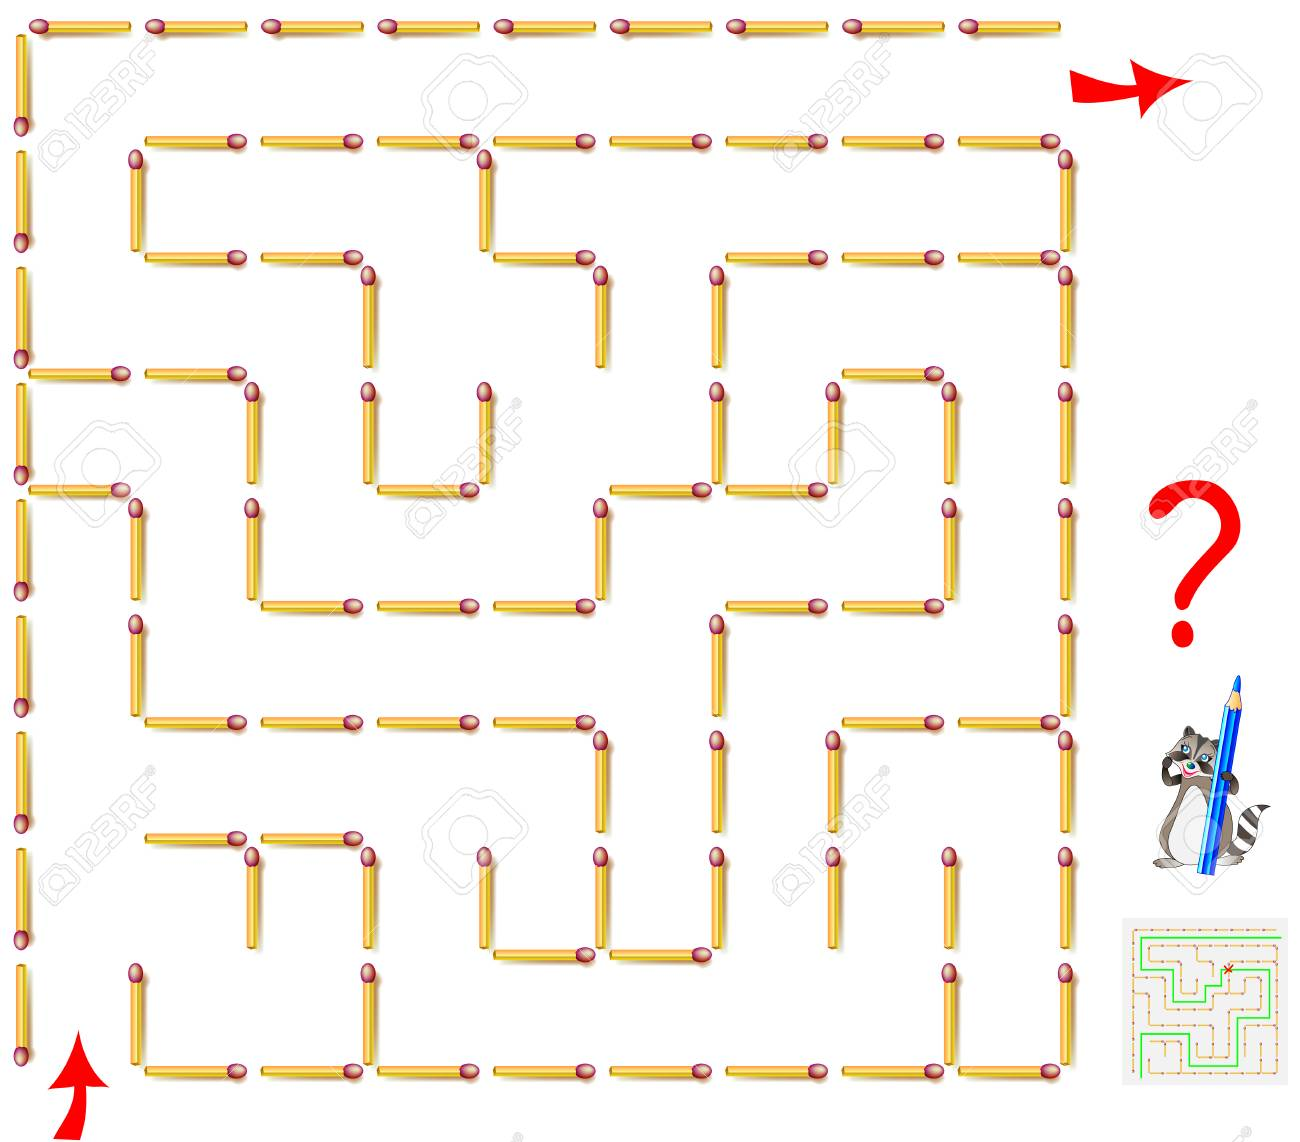 Logic Puzzle Game With Labyrinth Need To Remove One Matchstick Diagram Games And Find The Way From